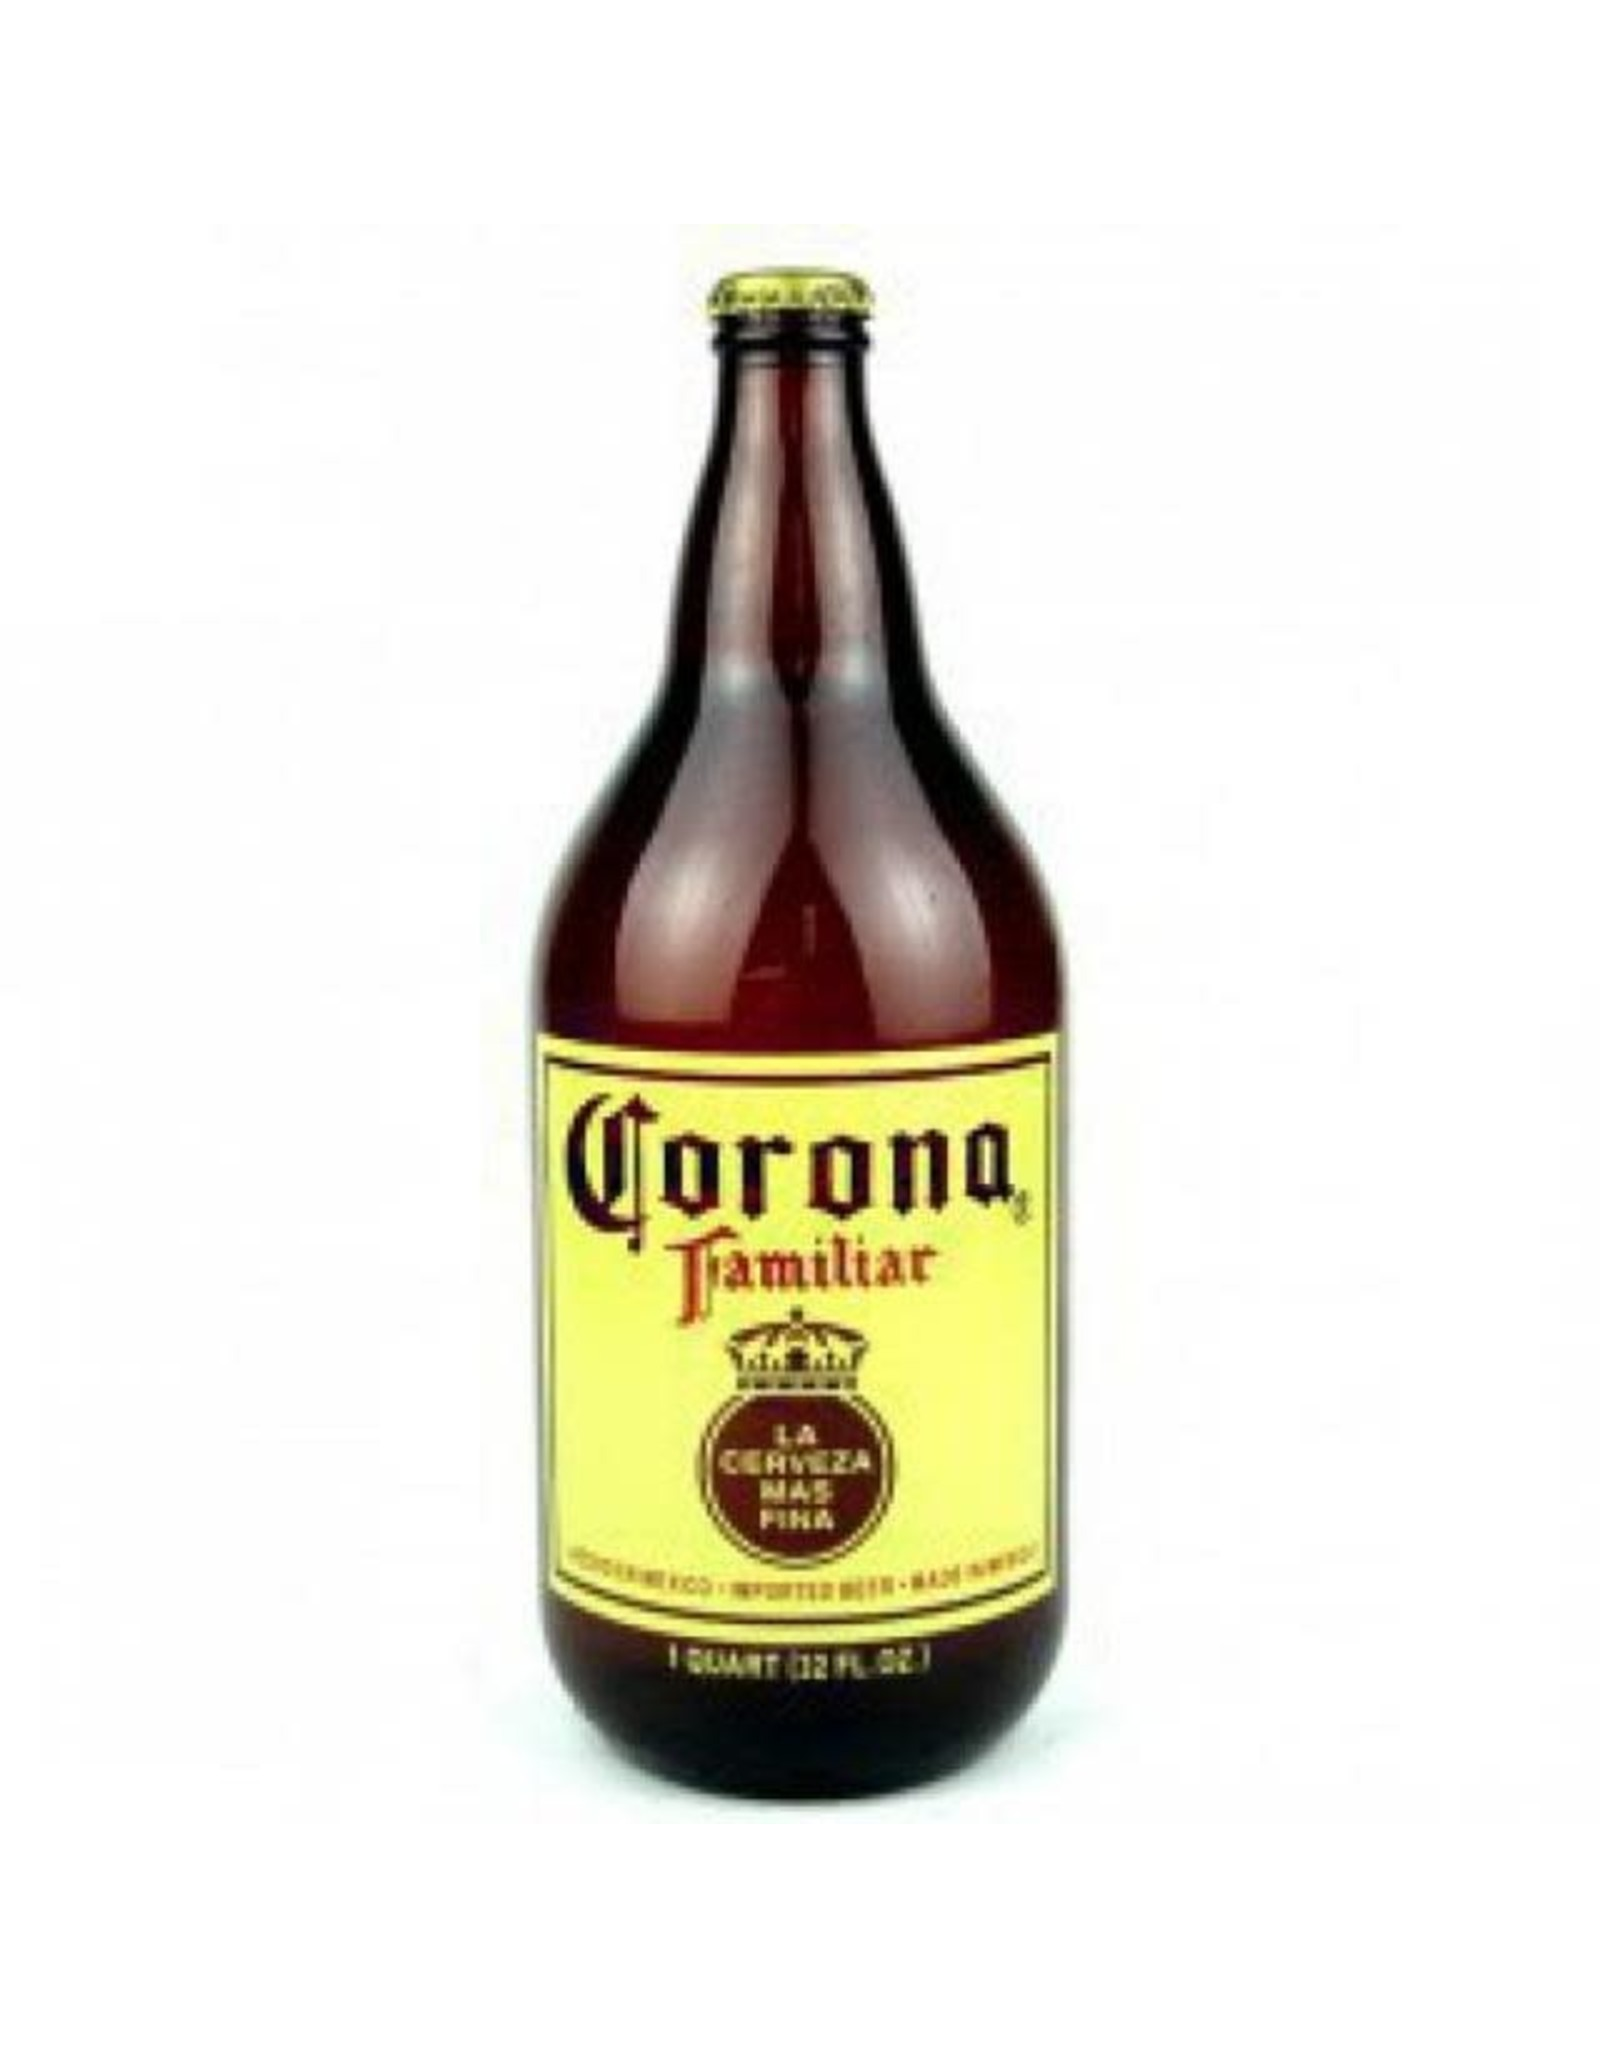 CORONA FAMILIAR 32oz